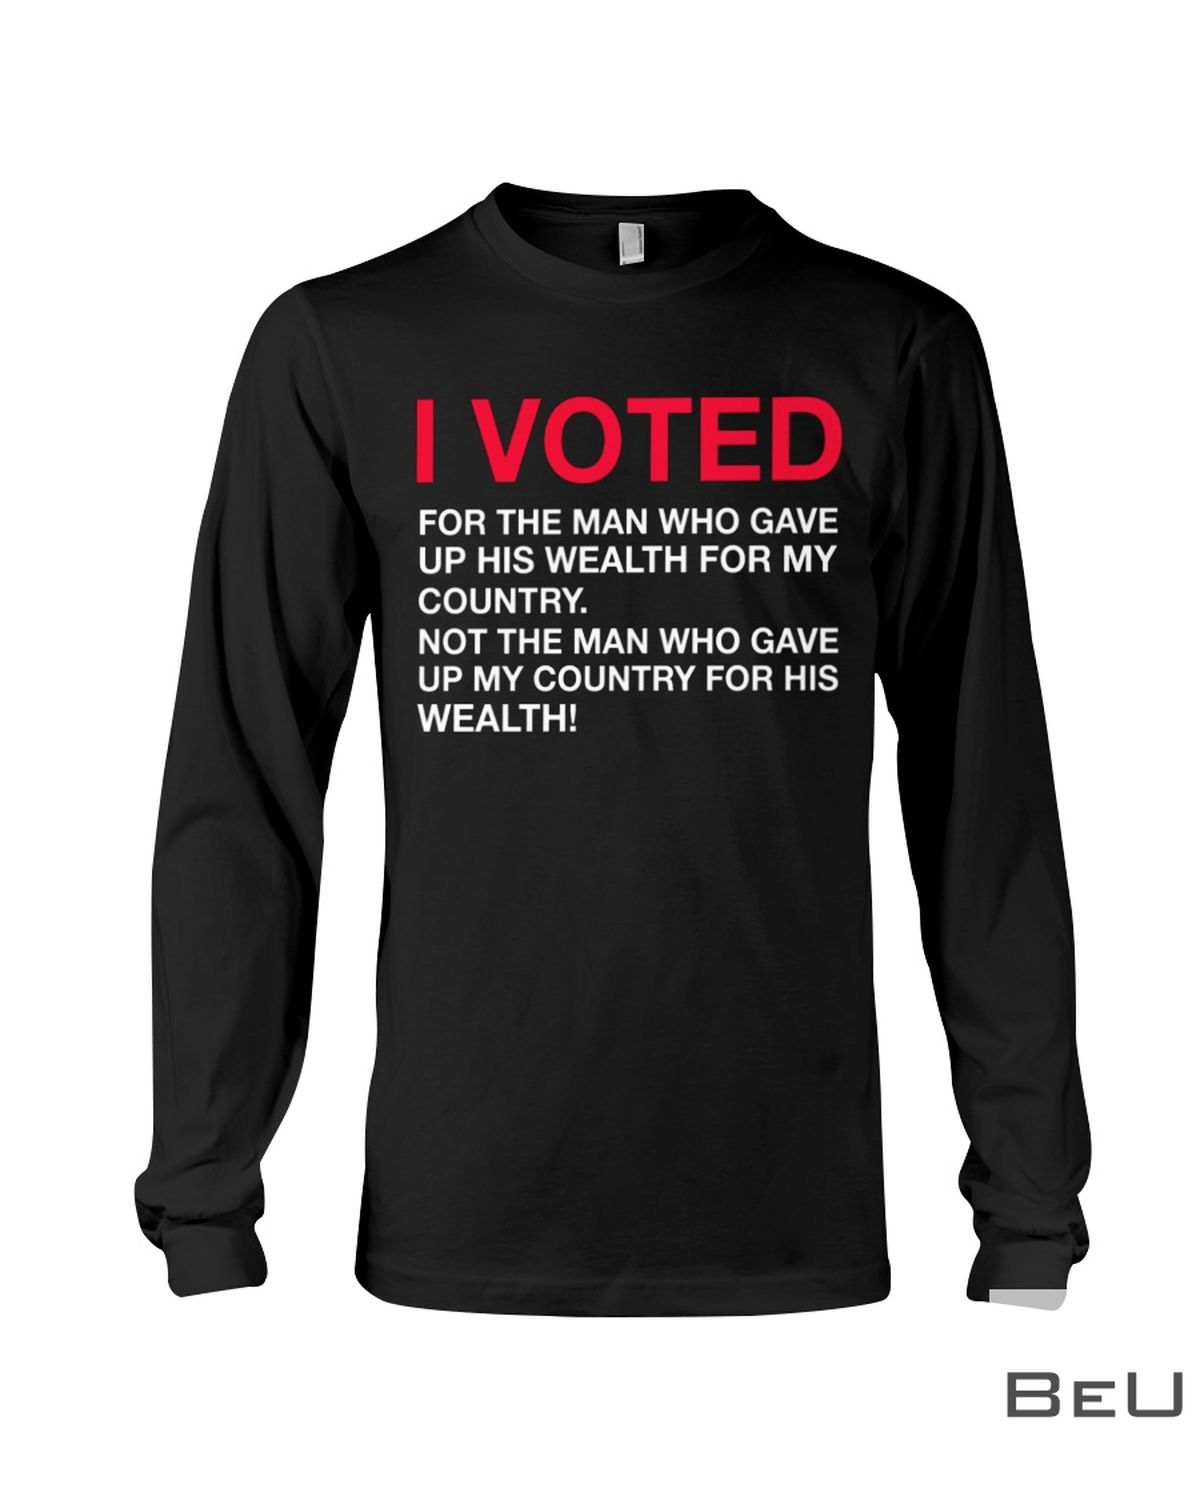 I Voted For The Man Who Gave Up His Wealth For My Country Shirtc